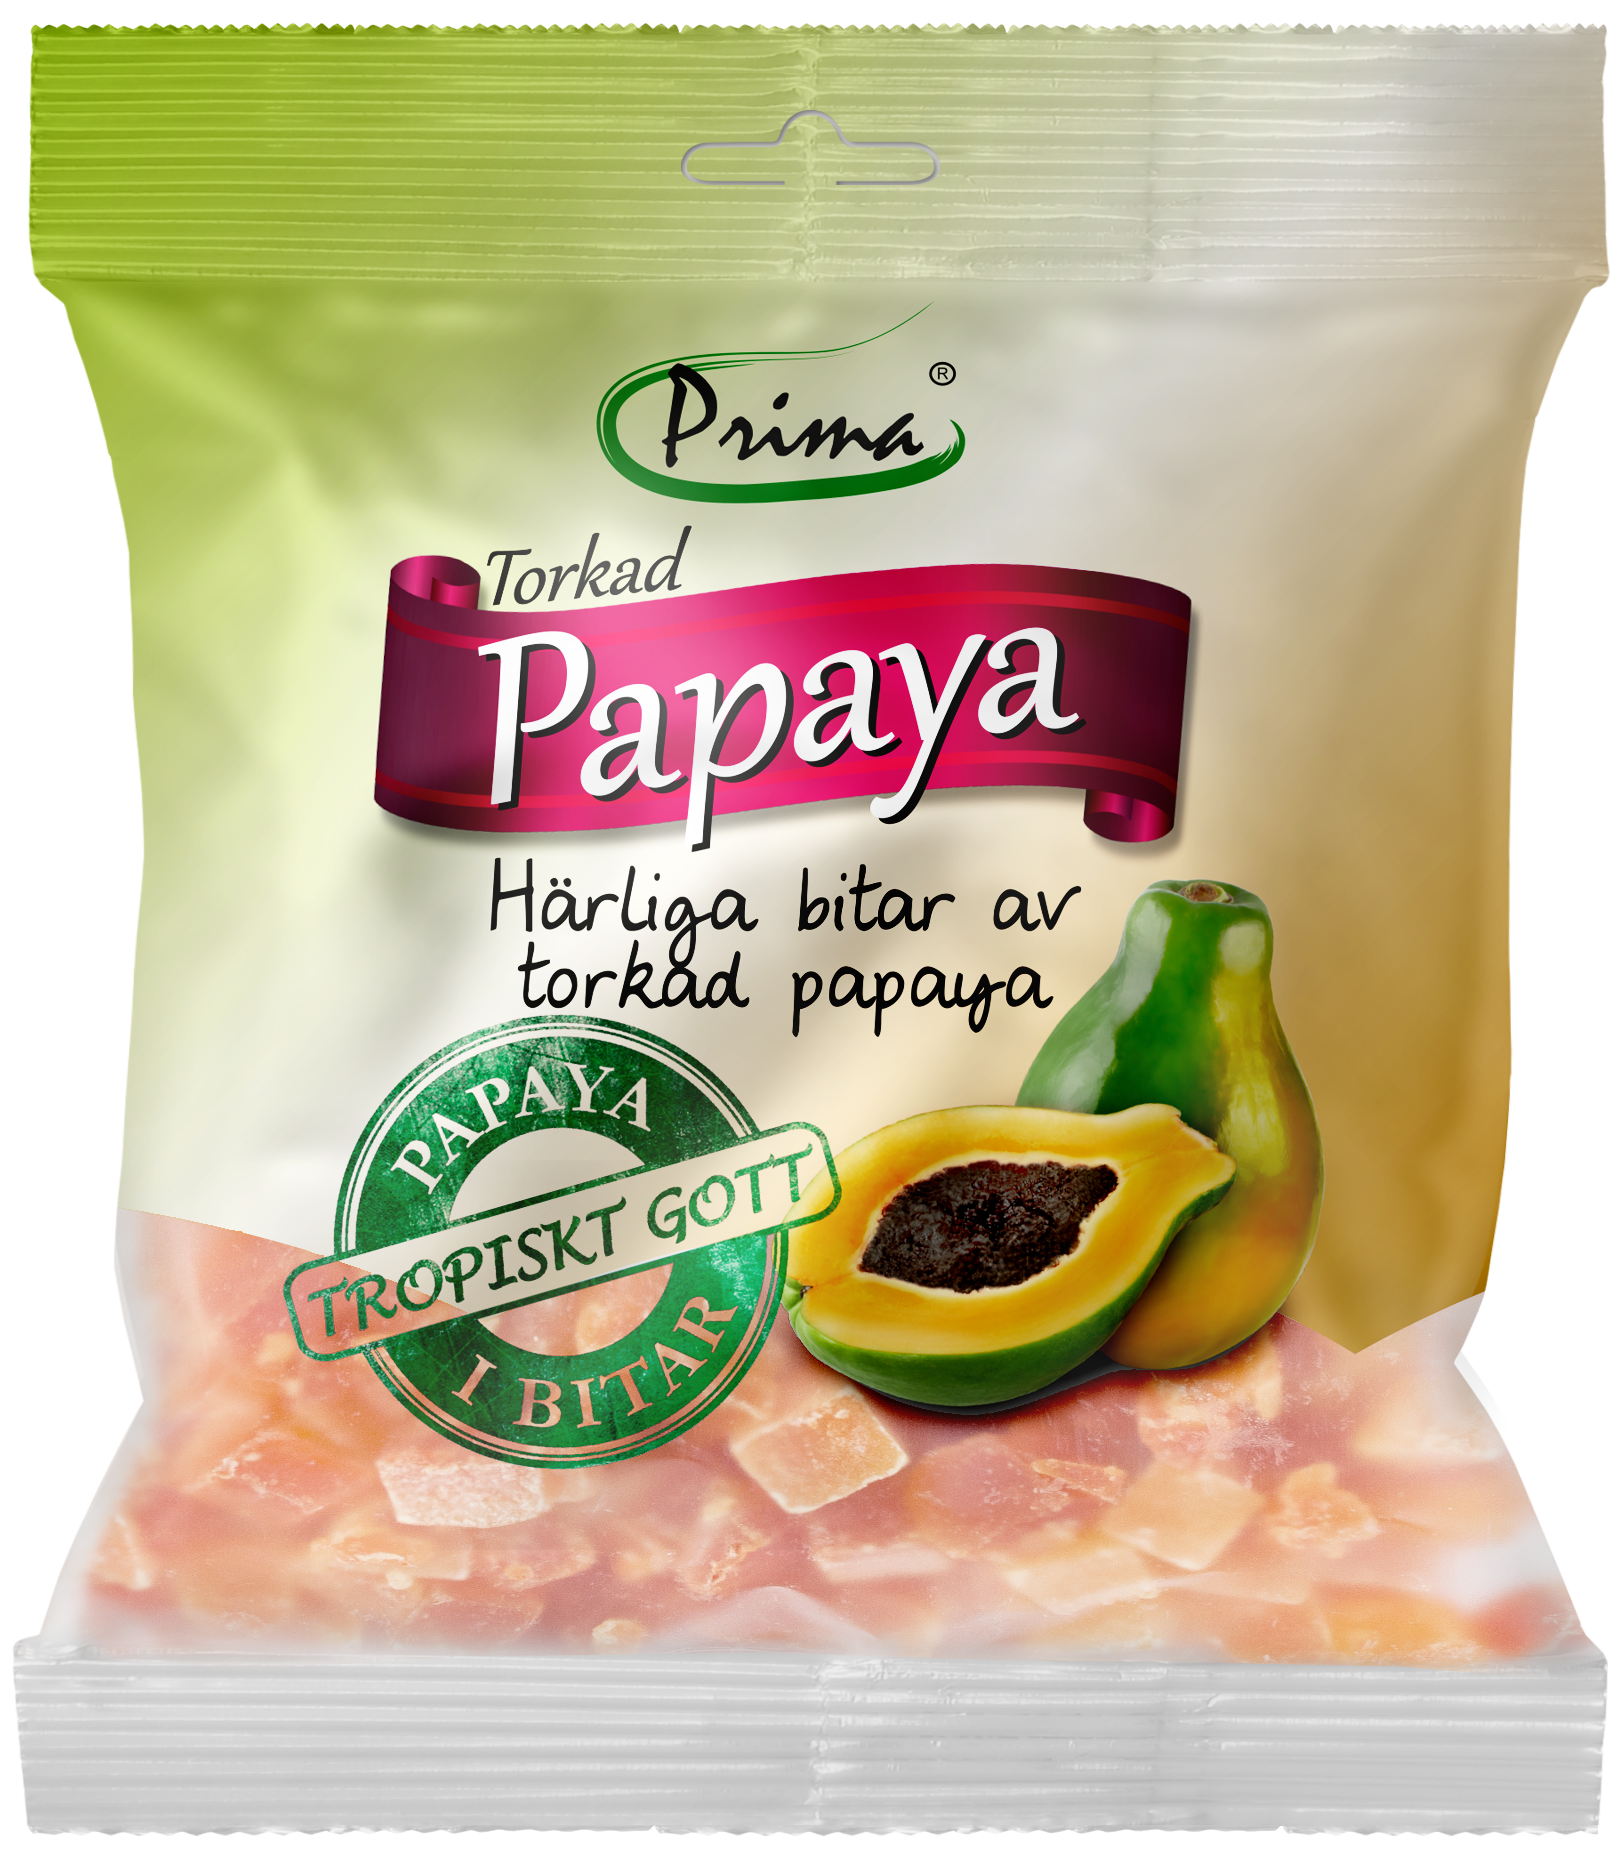 Dried papaya - Delicious pieces of dried papaya. The bag contain 175 g.Ingredients: Dried papaya, sugar, preservative E220, acidity regulator E330Nutritional value per 100gEnergy 330kcal / 1382 kJFat 0g, of which saturated fat 0gCarbohydrates 82g, of which sugars 69gProtein 0gSalt 375mg